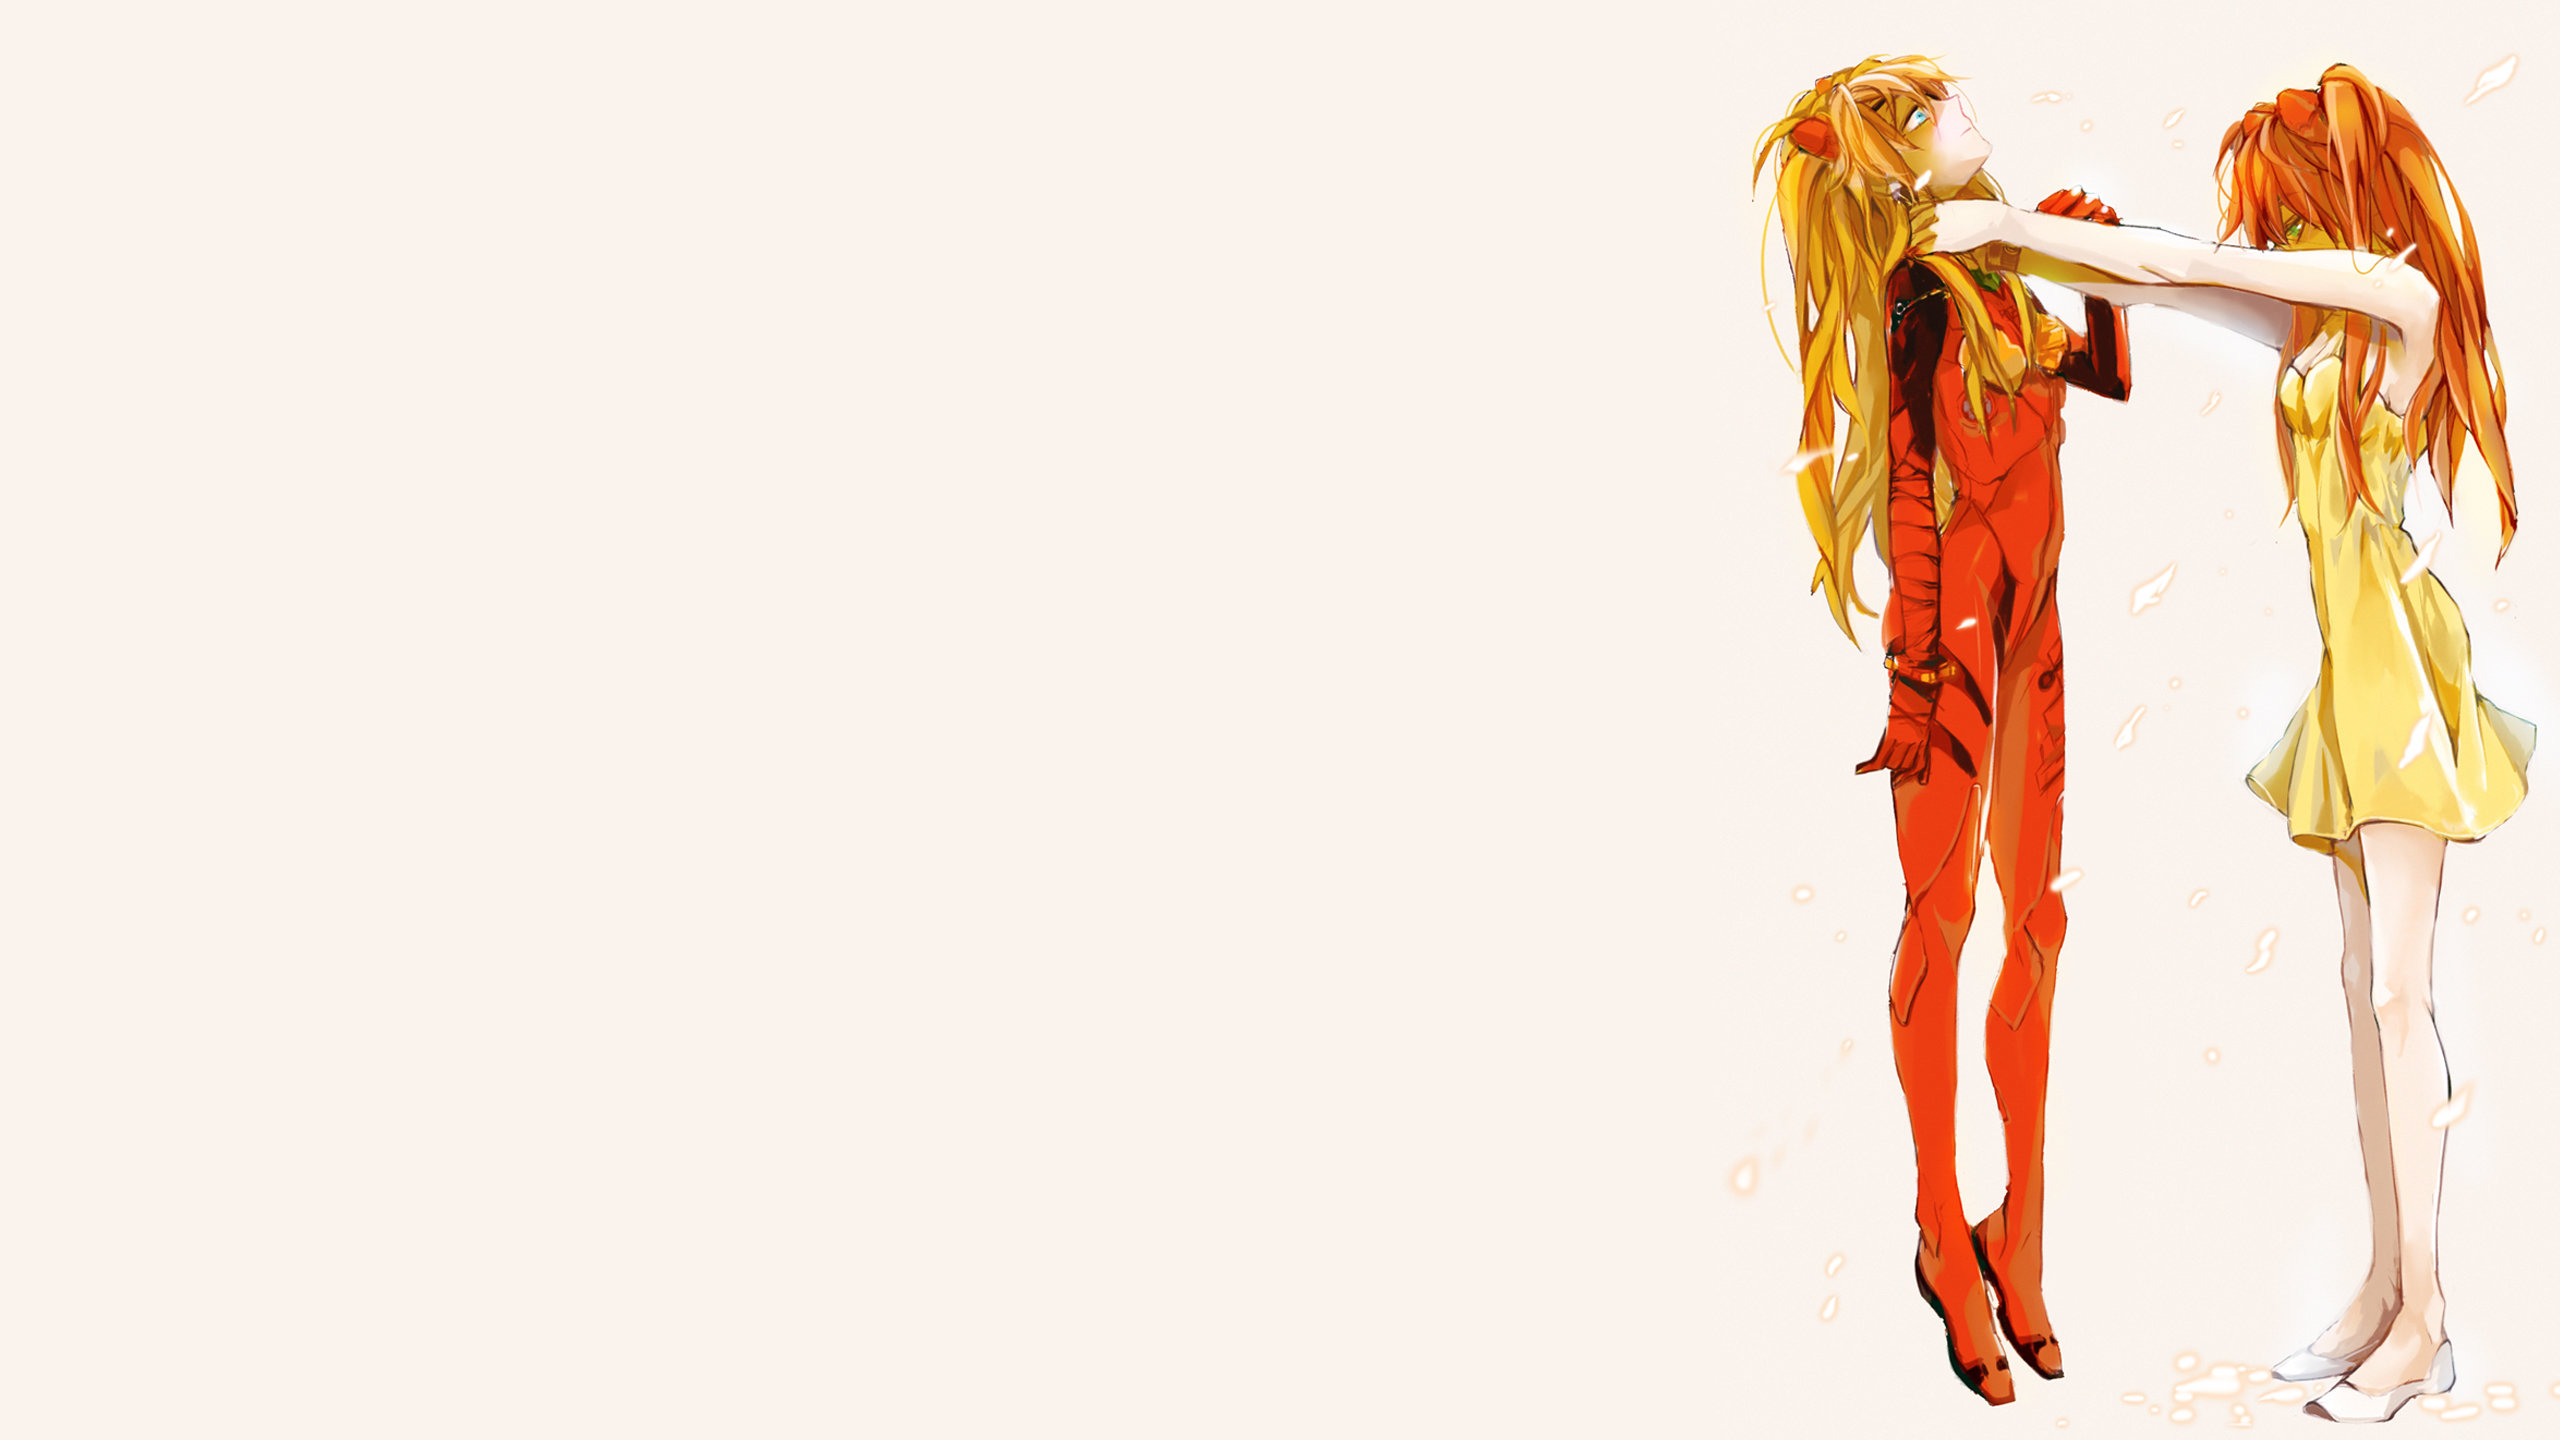 Awesome Asuka Langley Sohryu free wallpaper ID:215080 for hd 2560x1440 desktop